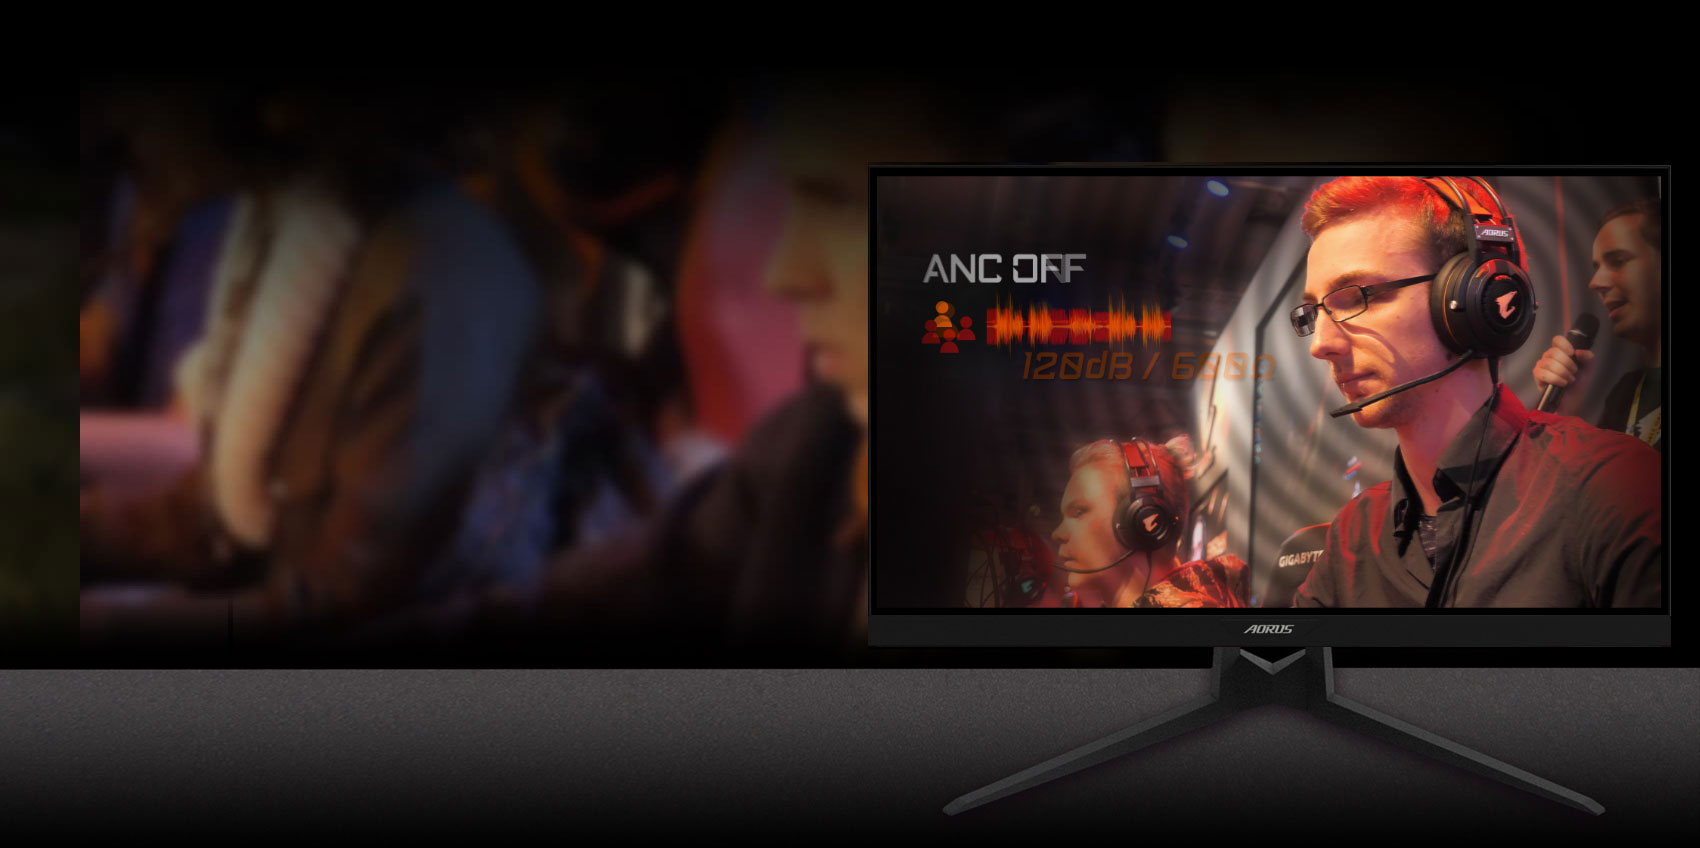 GIGABYTE AORUS FI27Q 27 Monitor Angled to the left, showing the effect of anc with a man is gaming